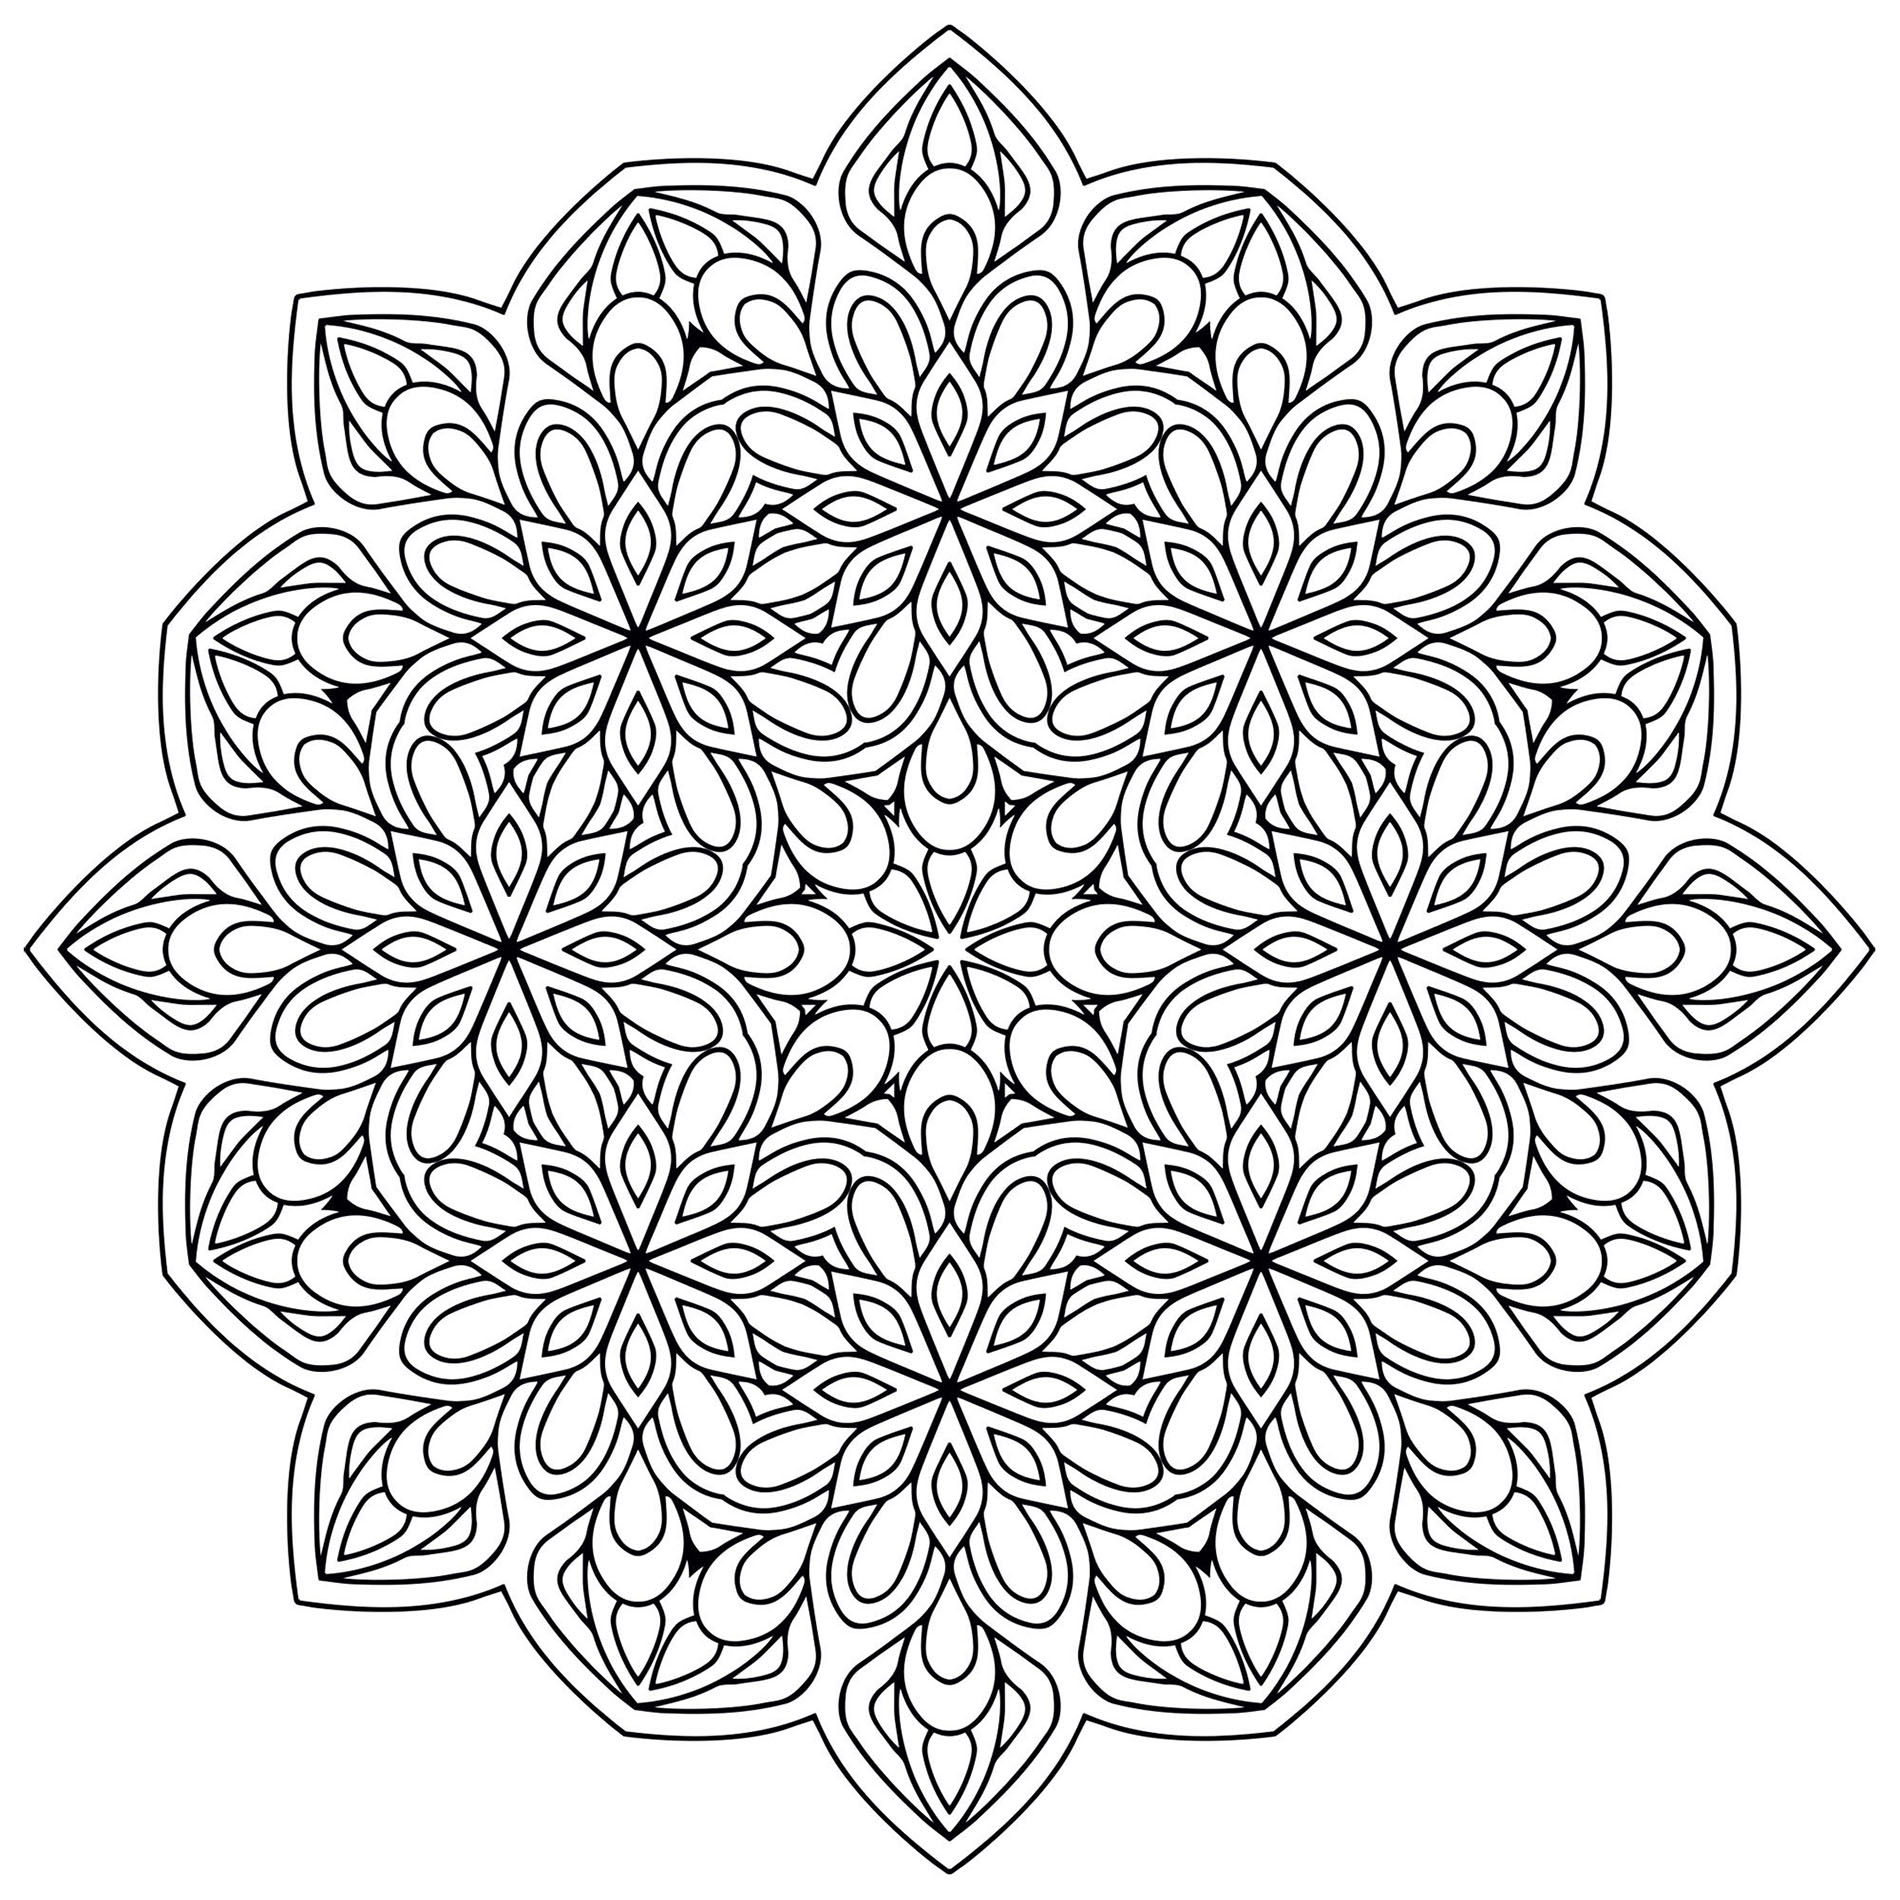 mandalas to print for free mandalas kids coloring pages. Black Bedroom Furniture Sets. Home Design Ideas